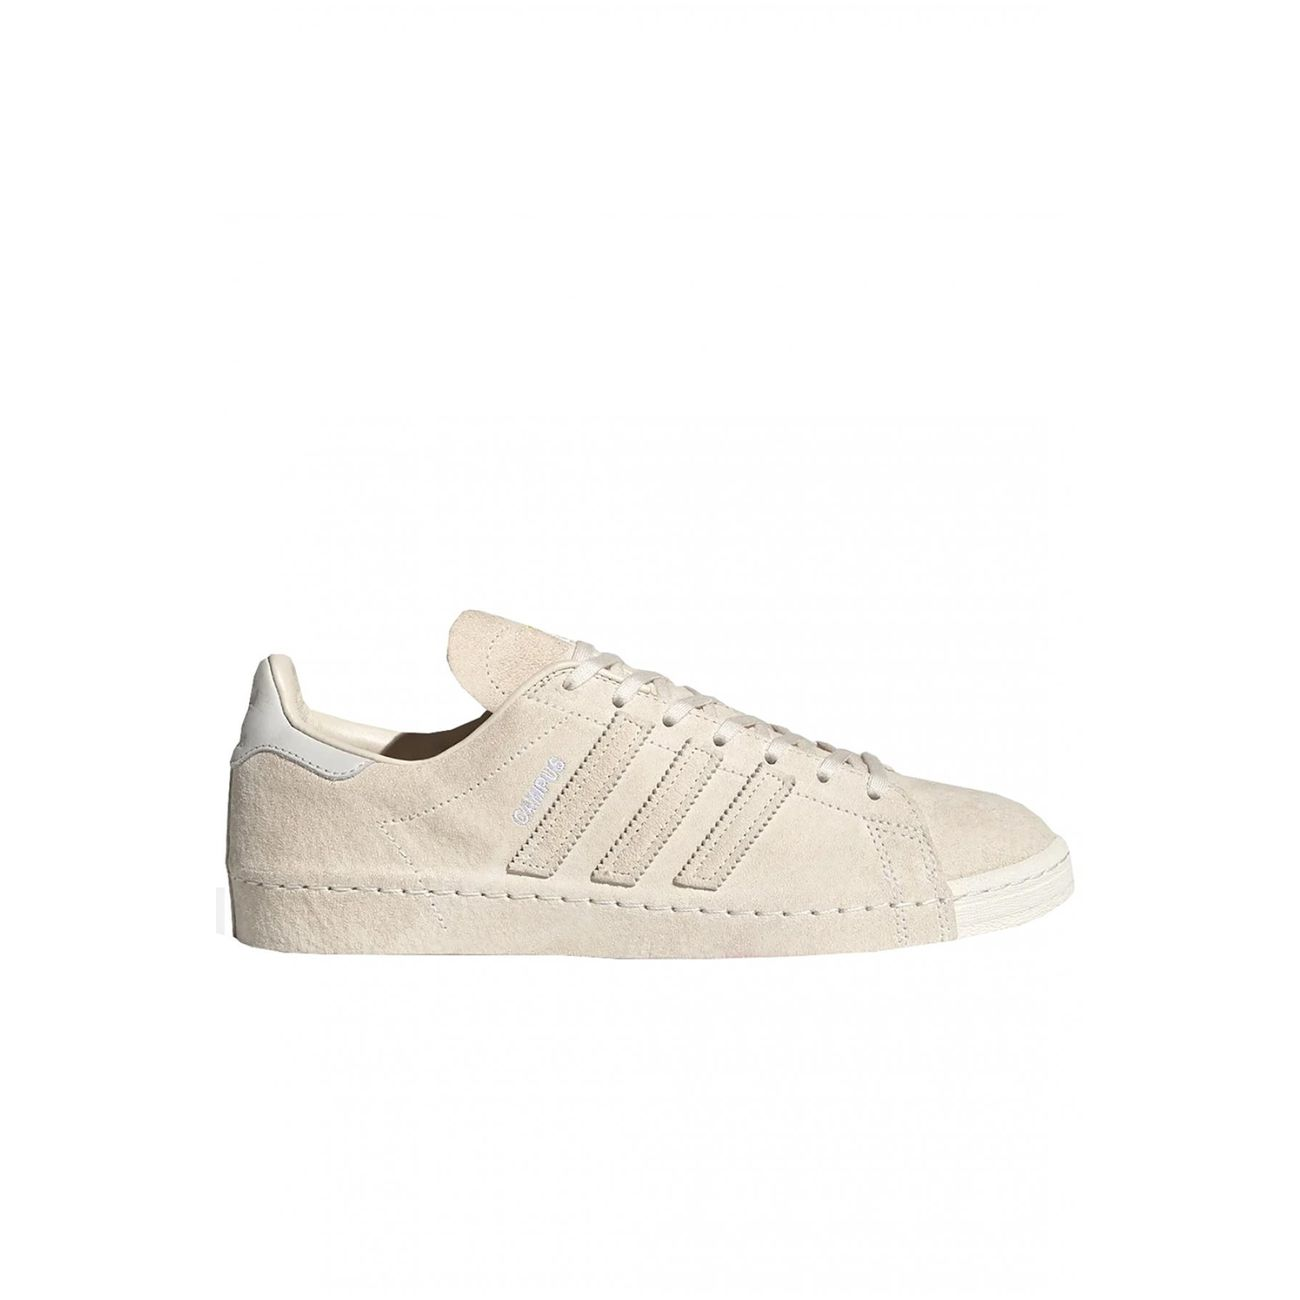 homme ADIDAS Sneaker tout cuir Campus 80s - Adidas - Homme